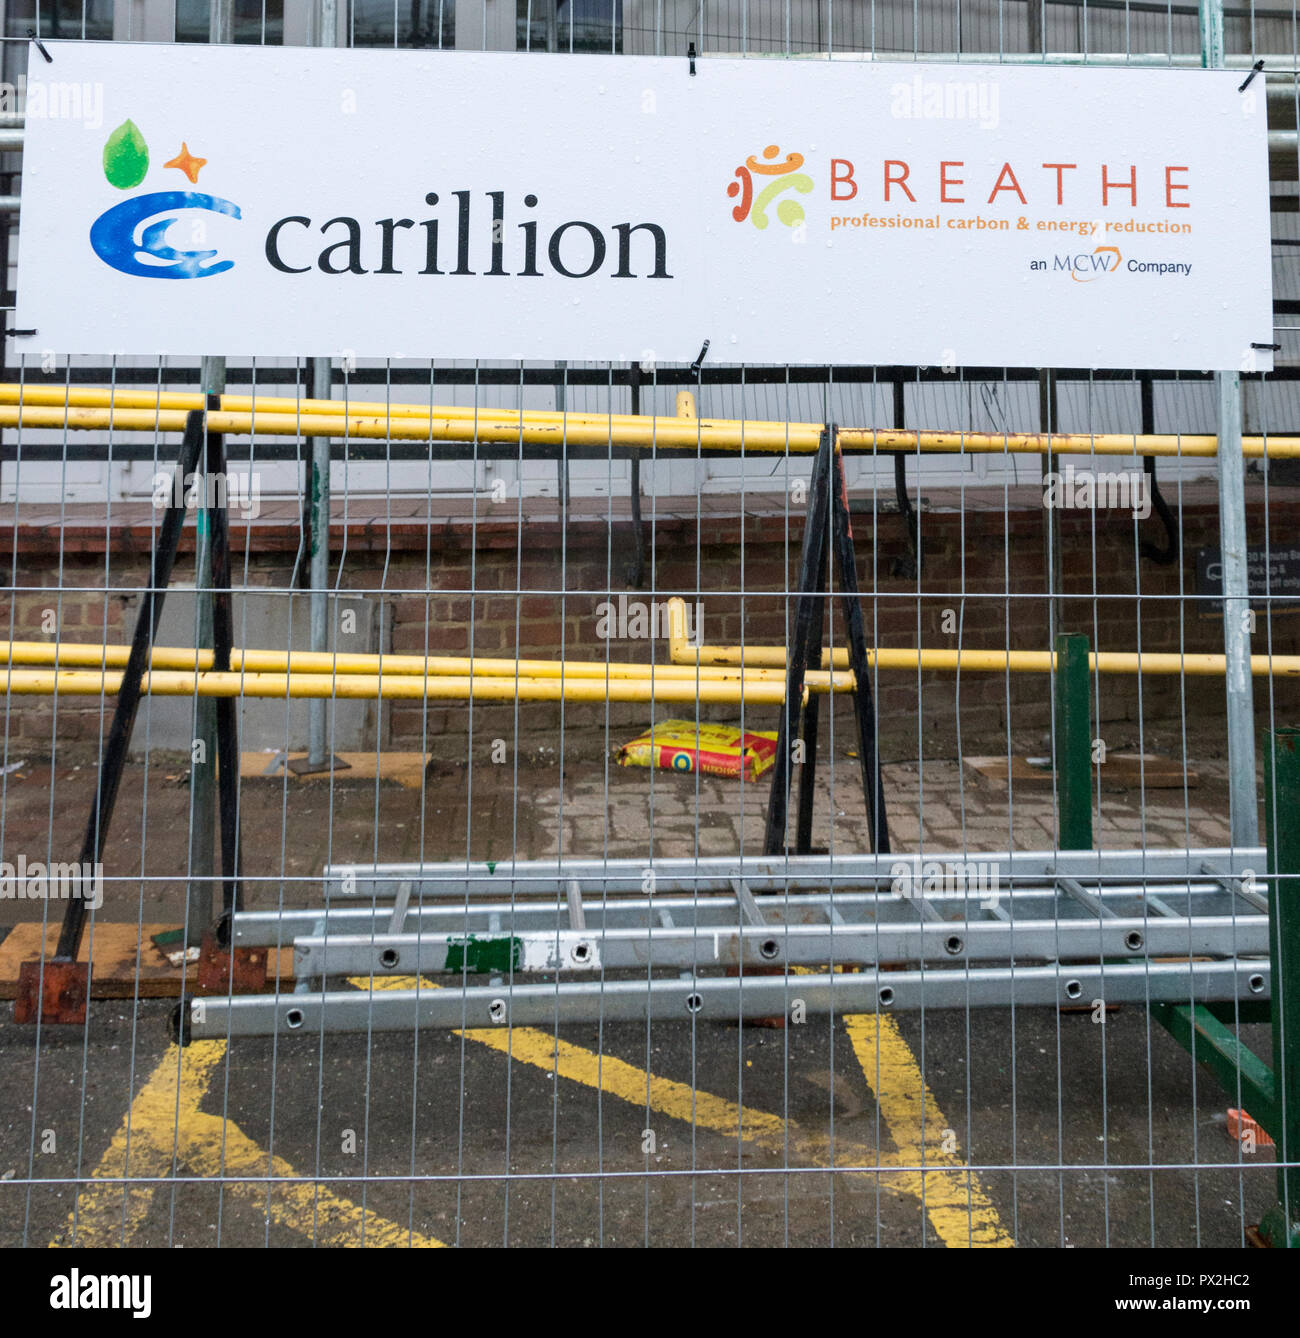 Carillion plc signage -  a British multinational facilities management and construction services company headquartered in Wolverhampton, UK - Stock Image